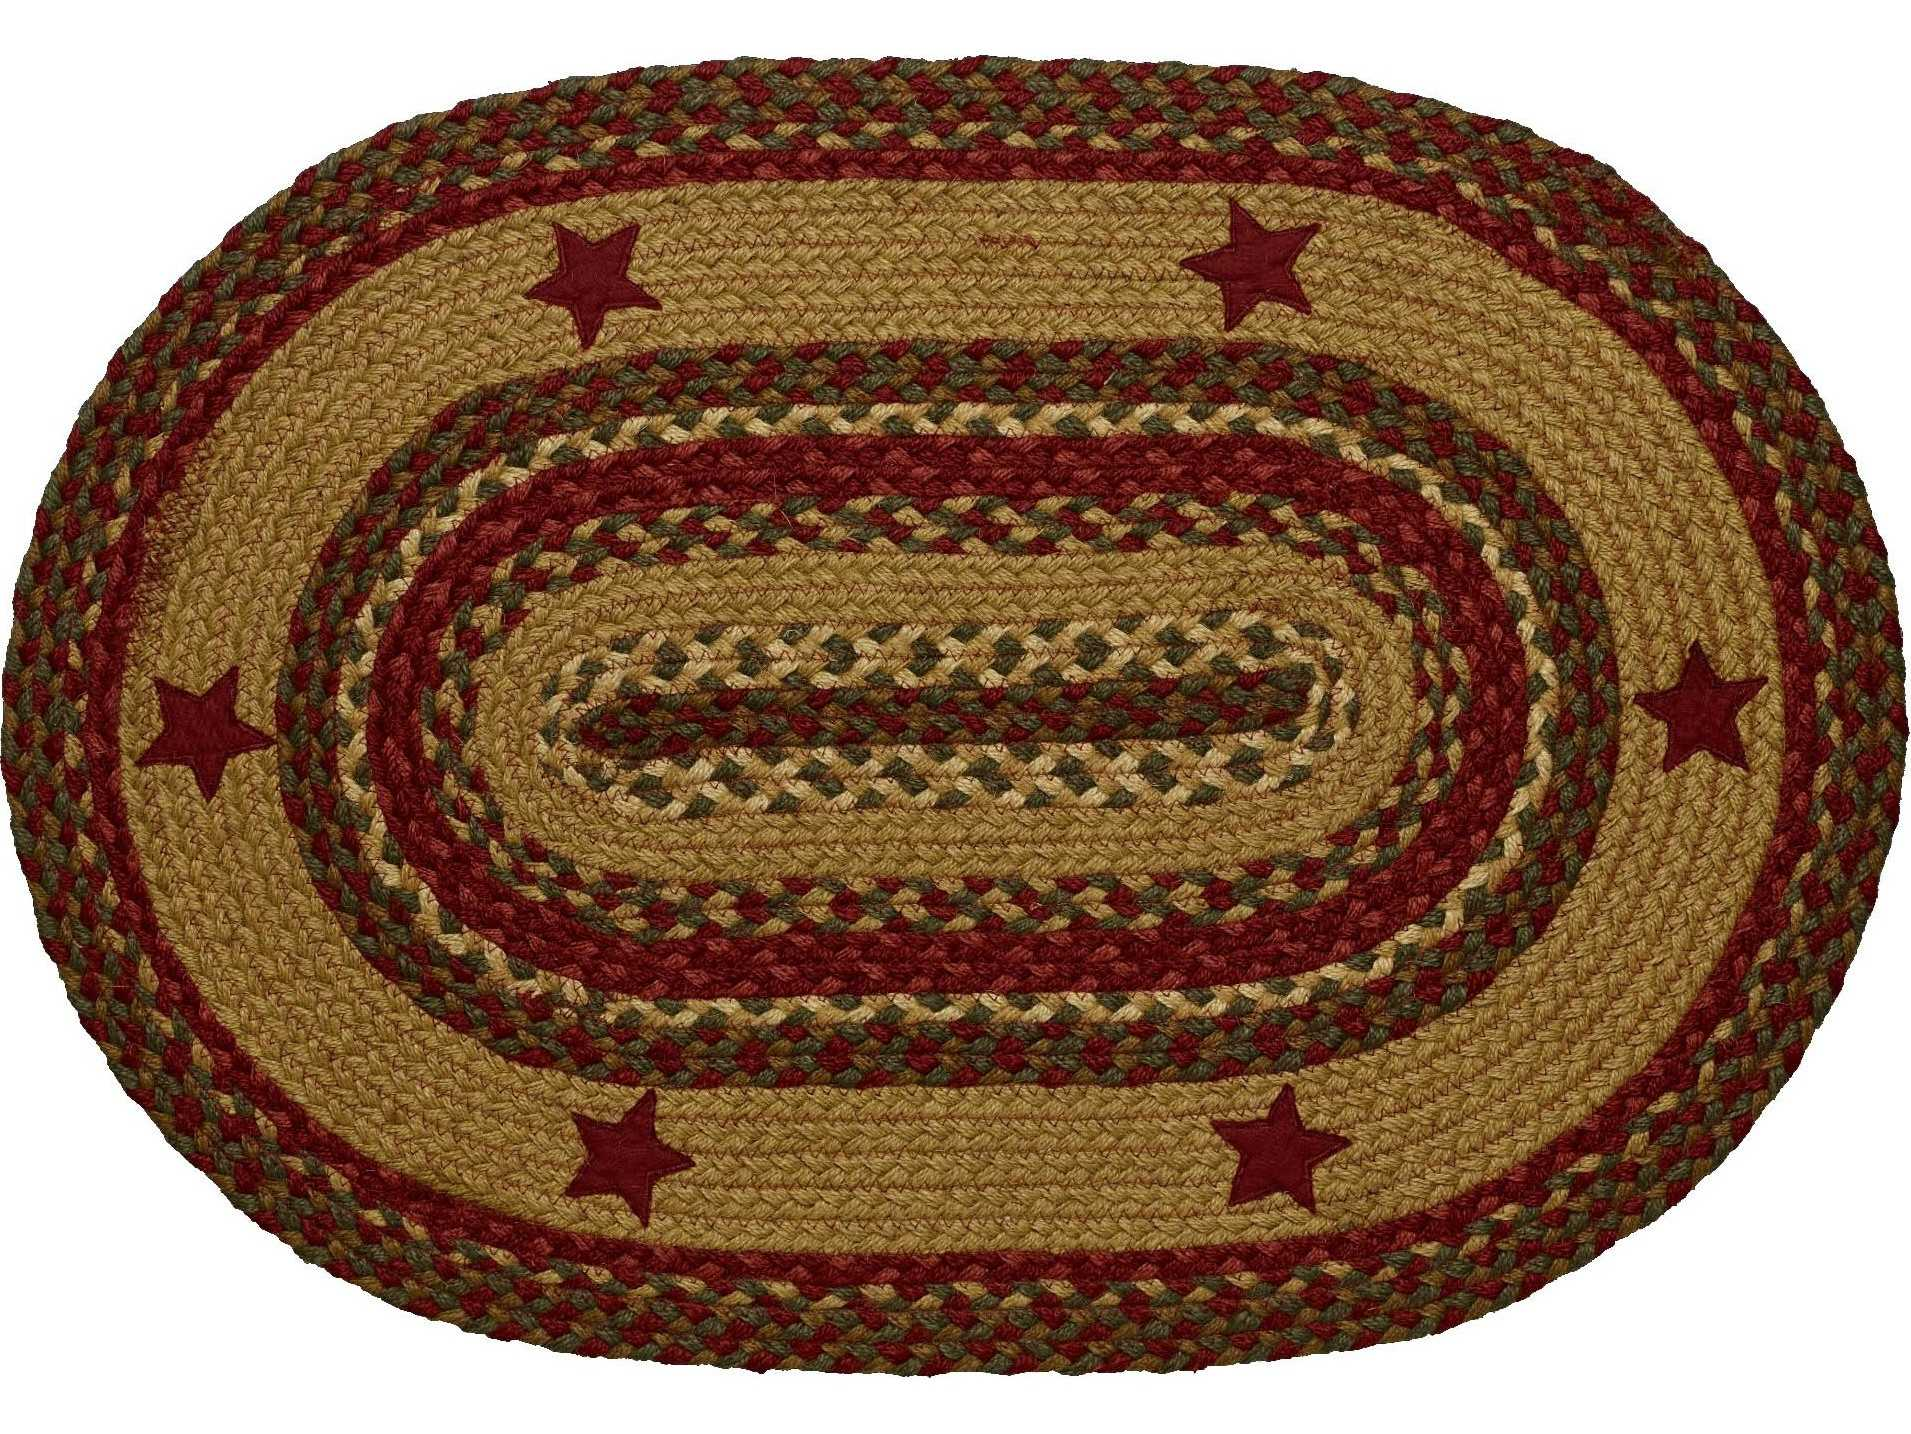 Ihf Rugs Cinnamon Star Oval Red Green Amp Beige Area Rug